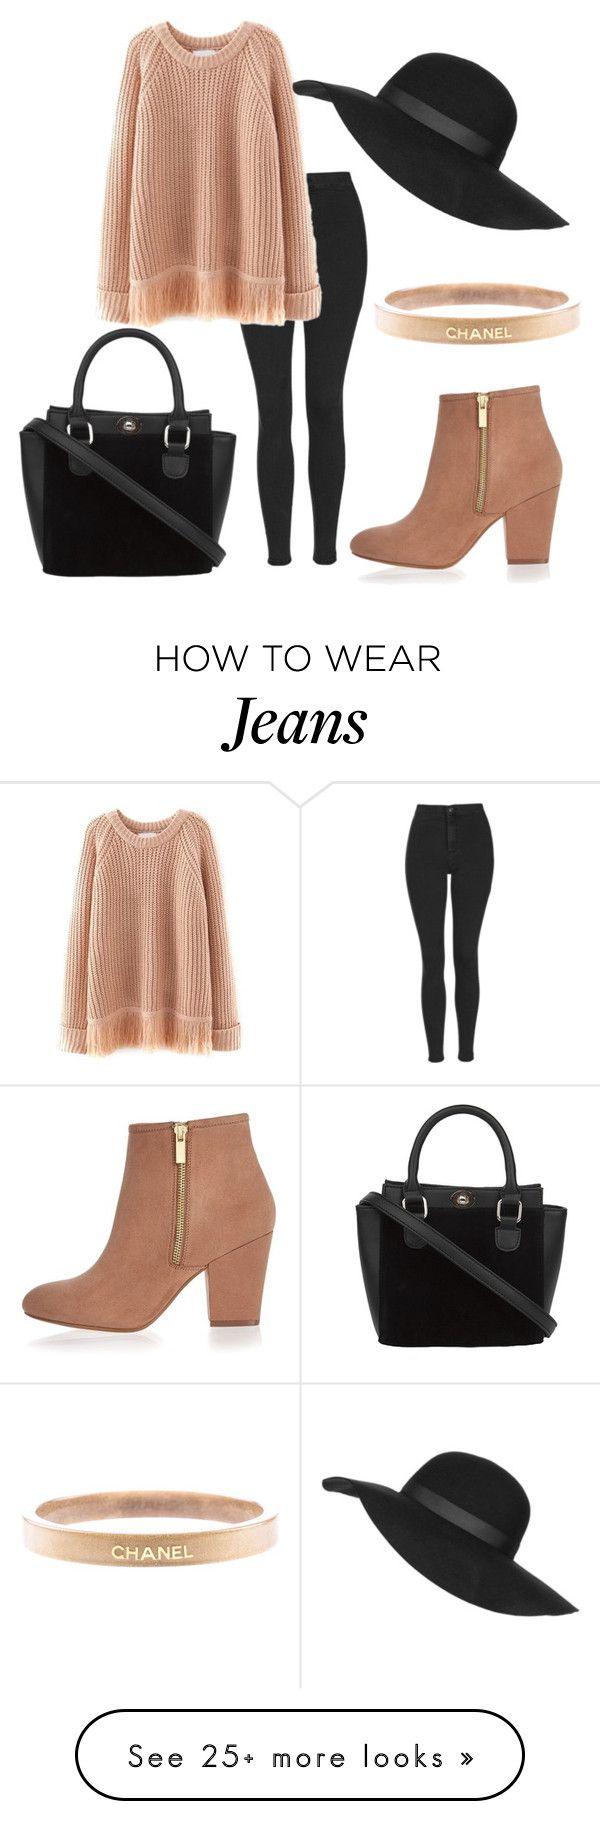 """:)"" by heart235 on Polyvore featuring Topshop, River Island, Chanel, women's…"